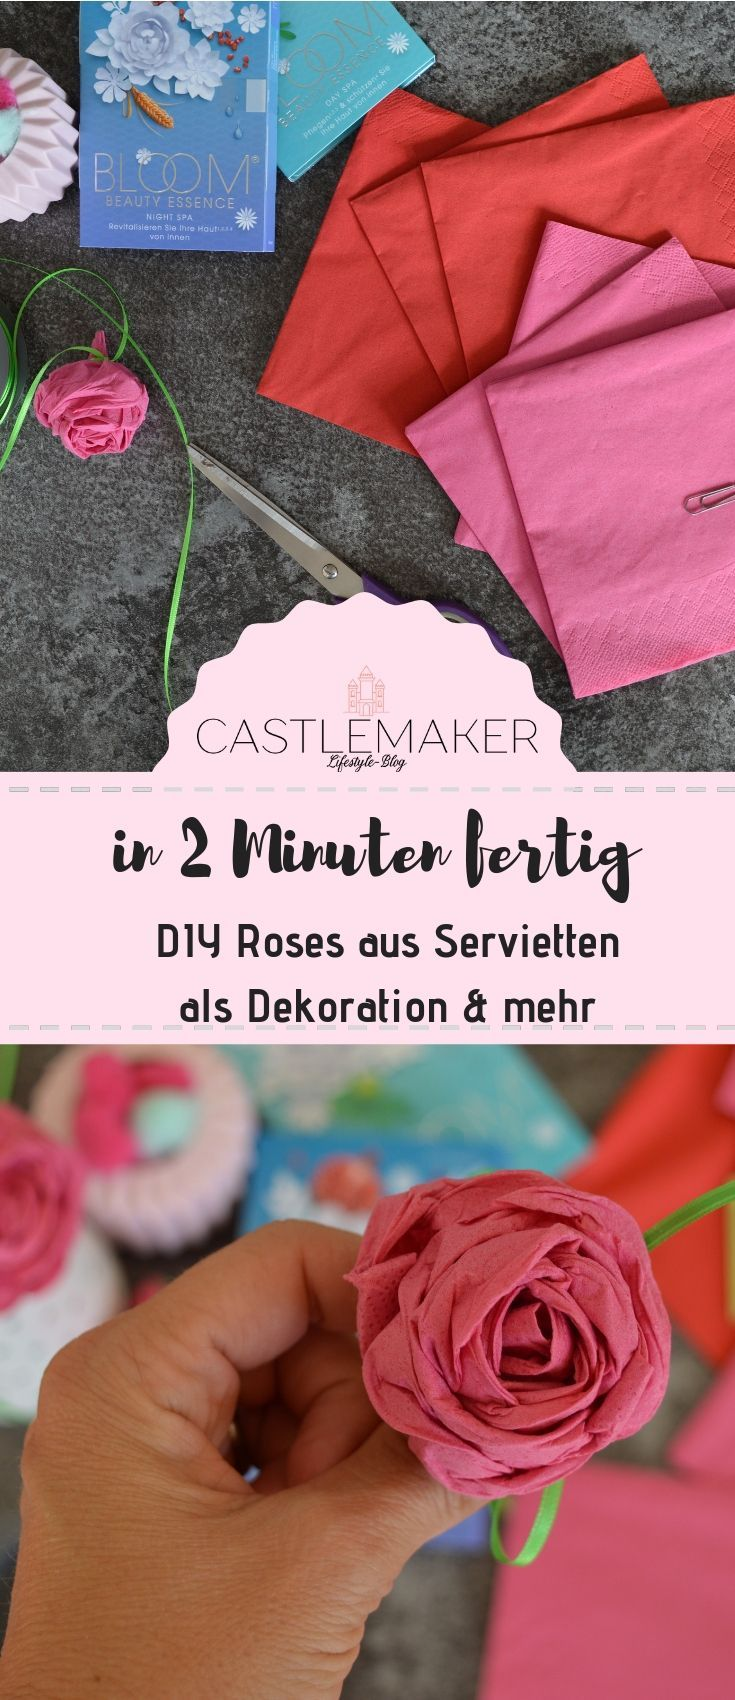 Photo of BLOOM BEAUTY ESSENCE® experiences and DIY roses from napkins / competition «CASTLEMAKER Lifestyle Blog